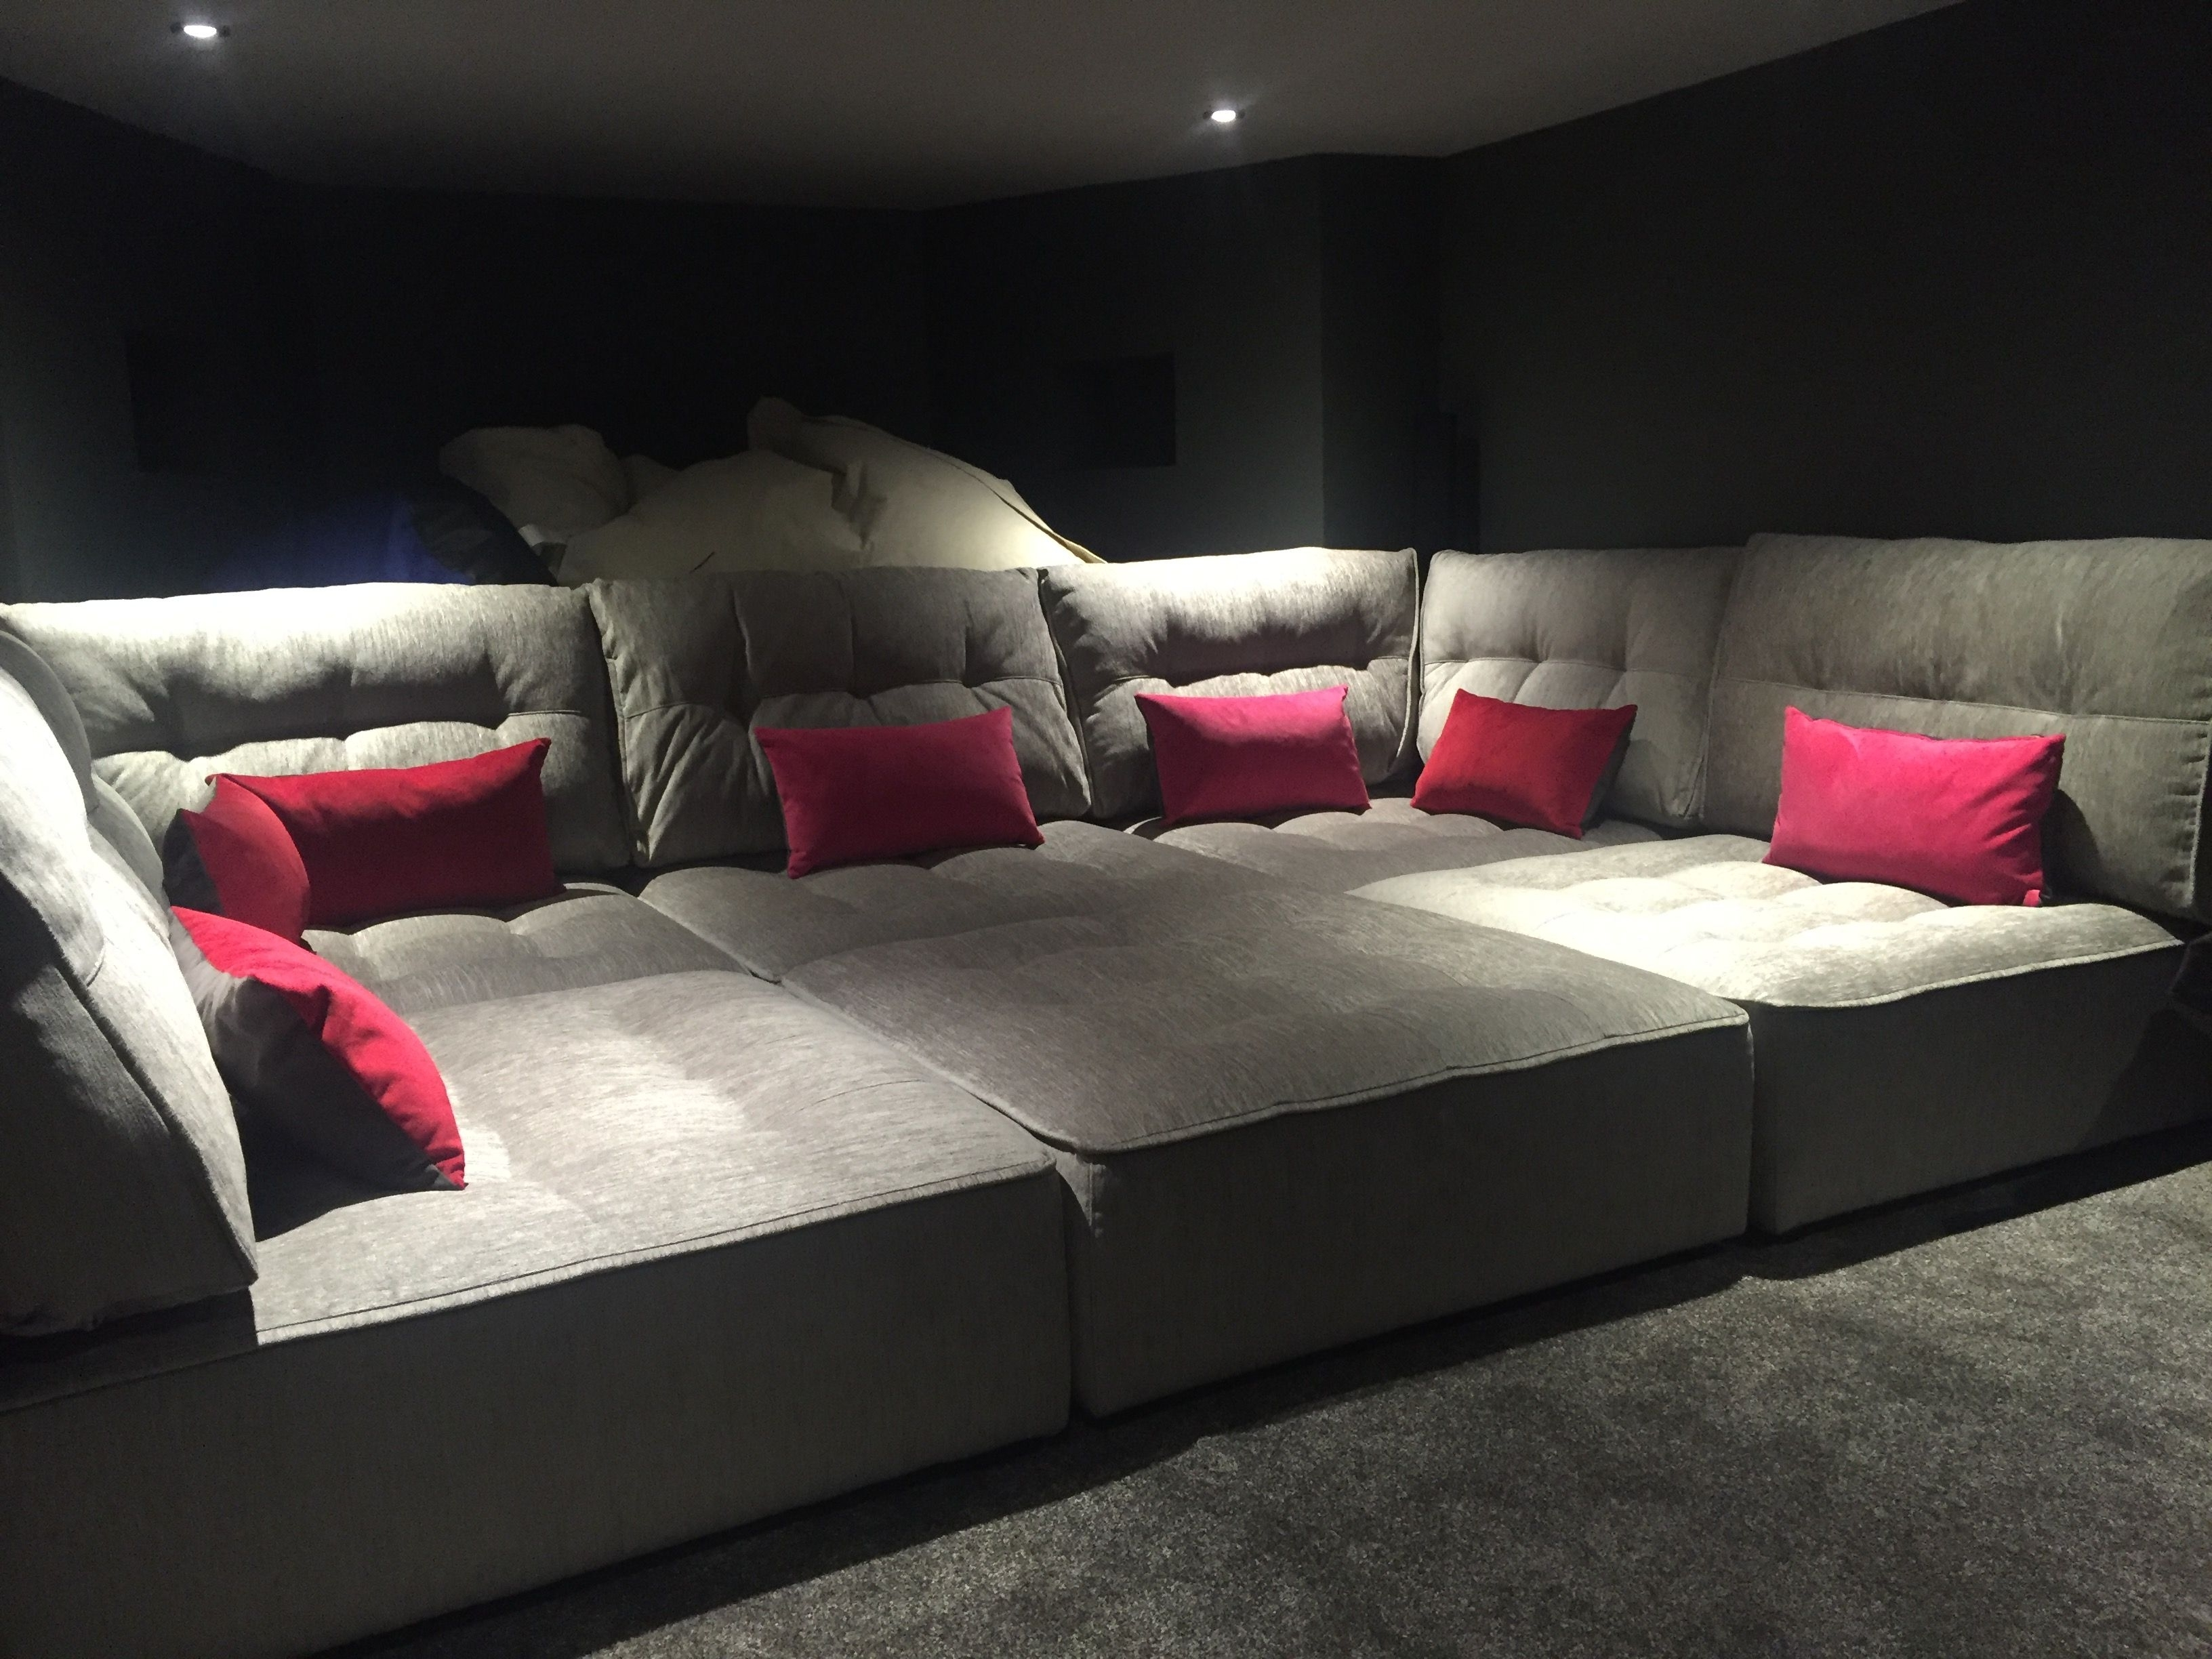 Media Room Sectional Sofas In Trendy Tapas In A Basement Media Room – Perfect For The Family To Chill (View 8 of 20)